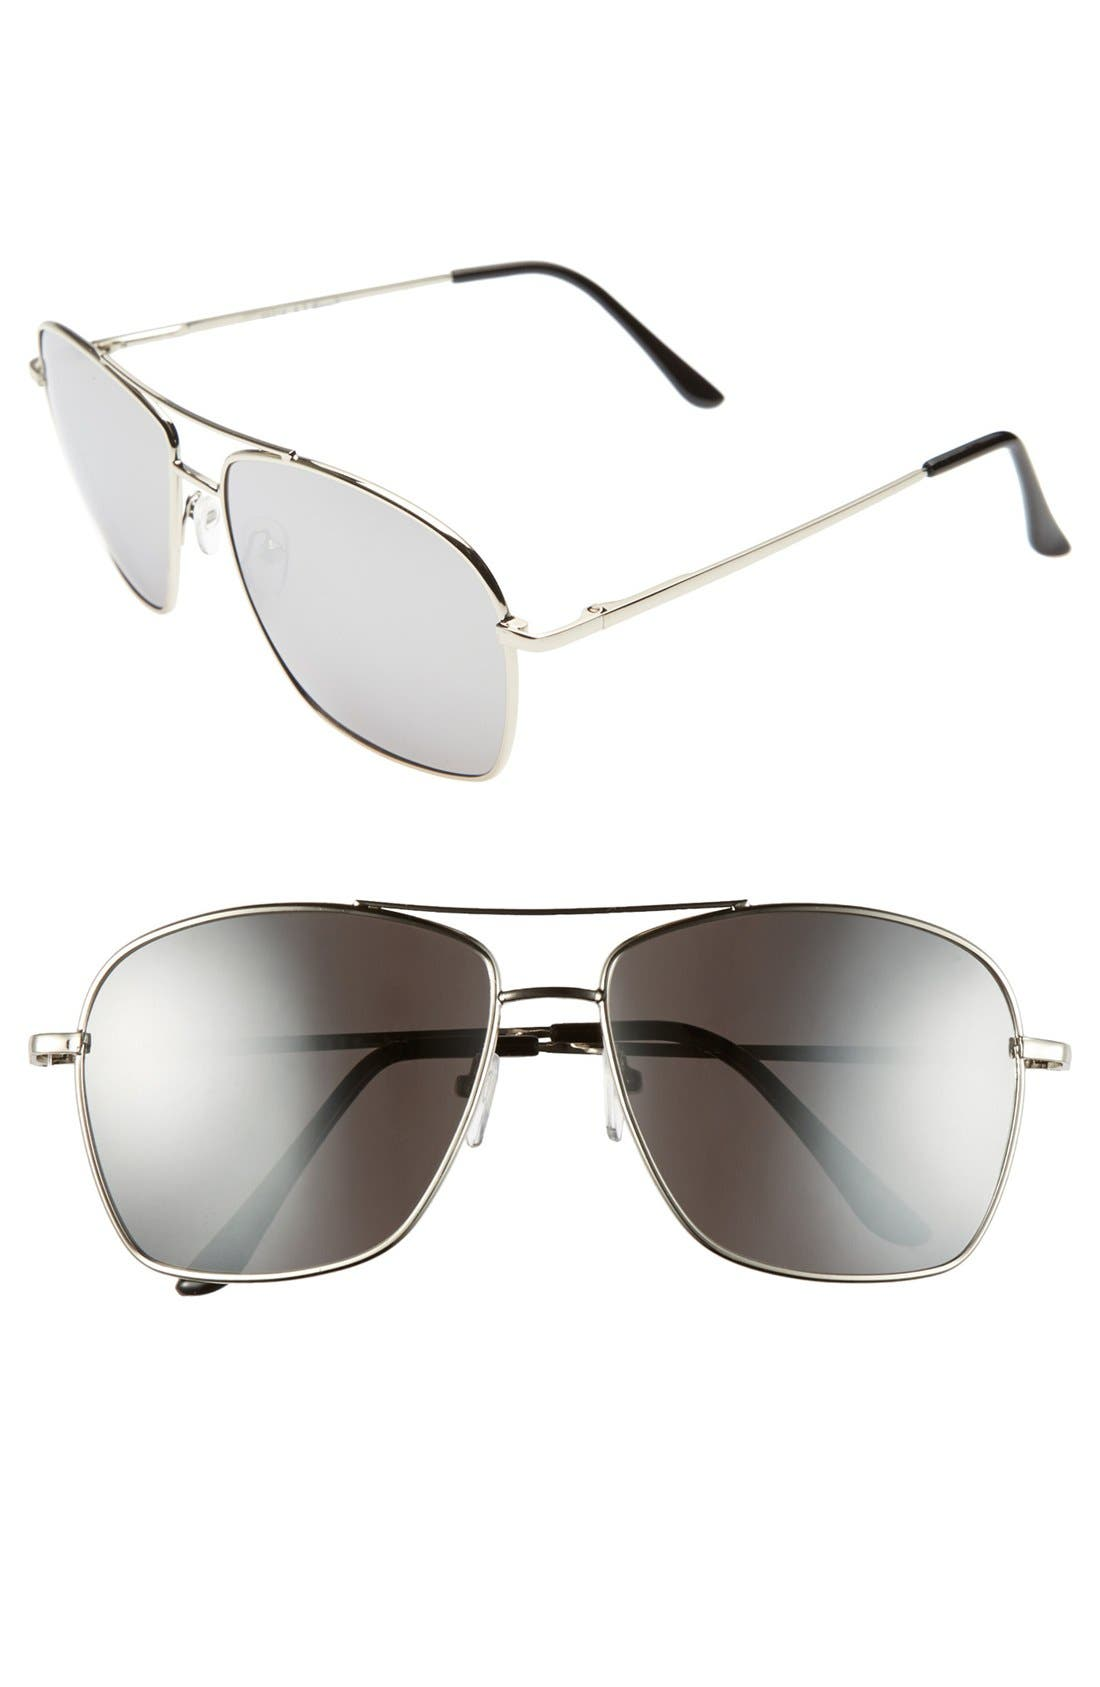 Main Image - A.J. Morgan 'Mission' Aviator Sunglasses